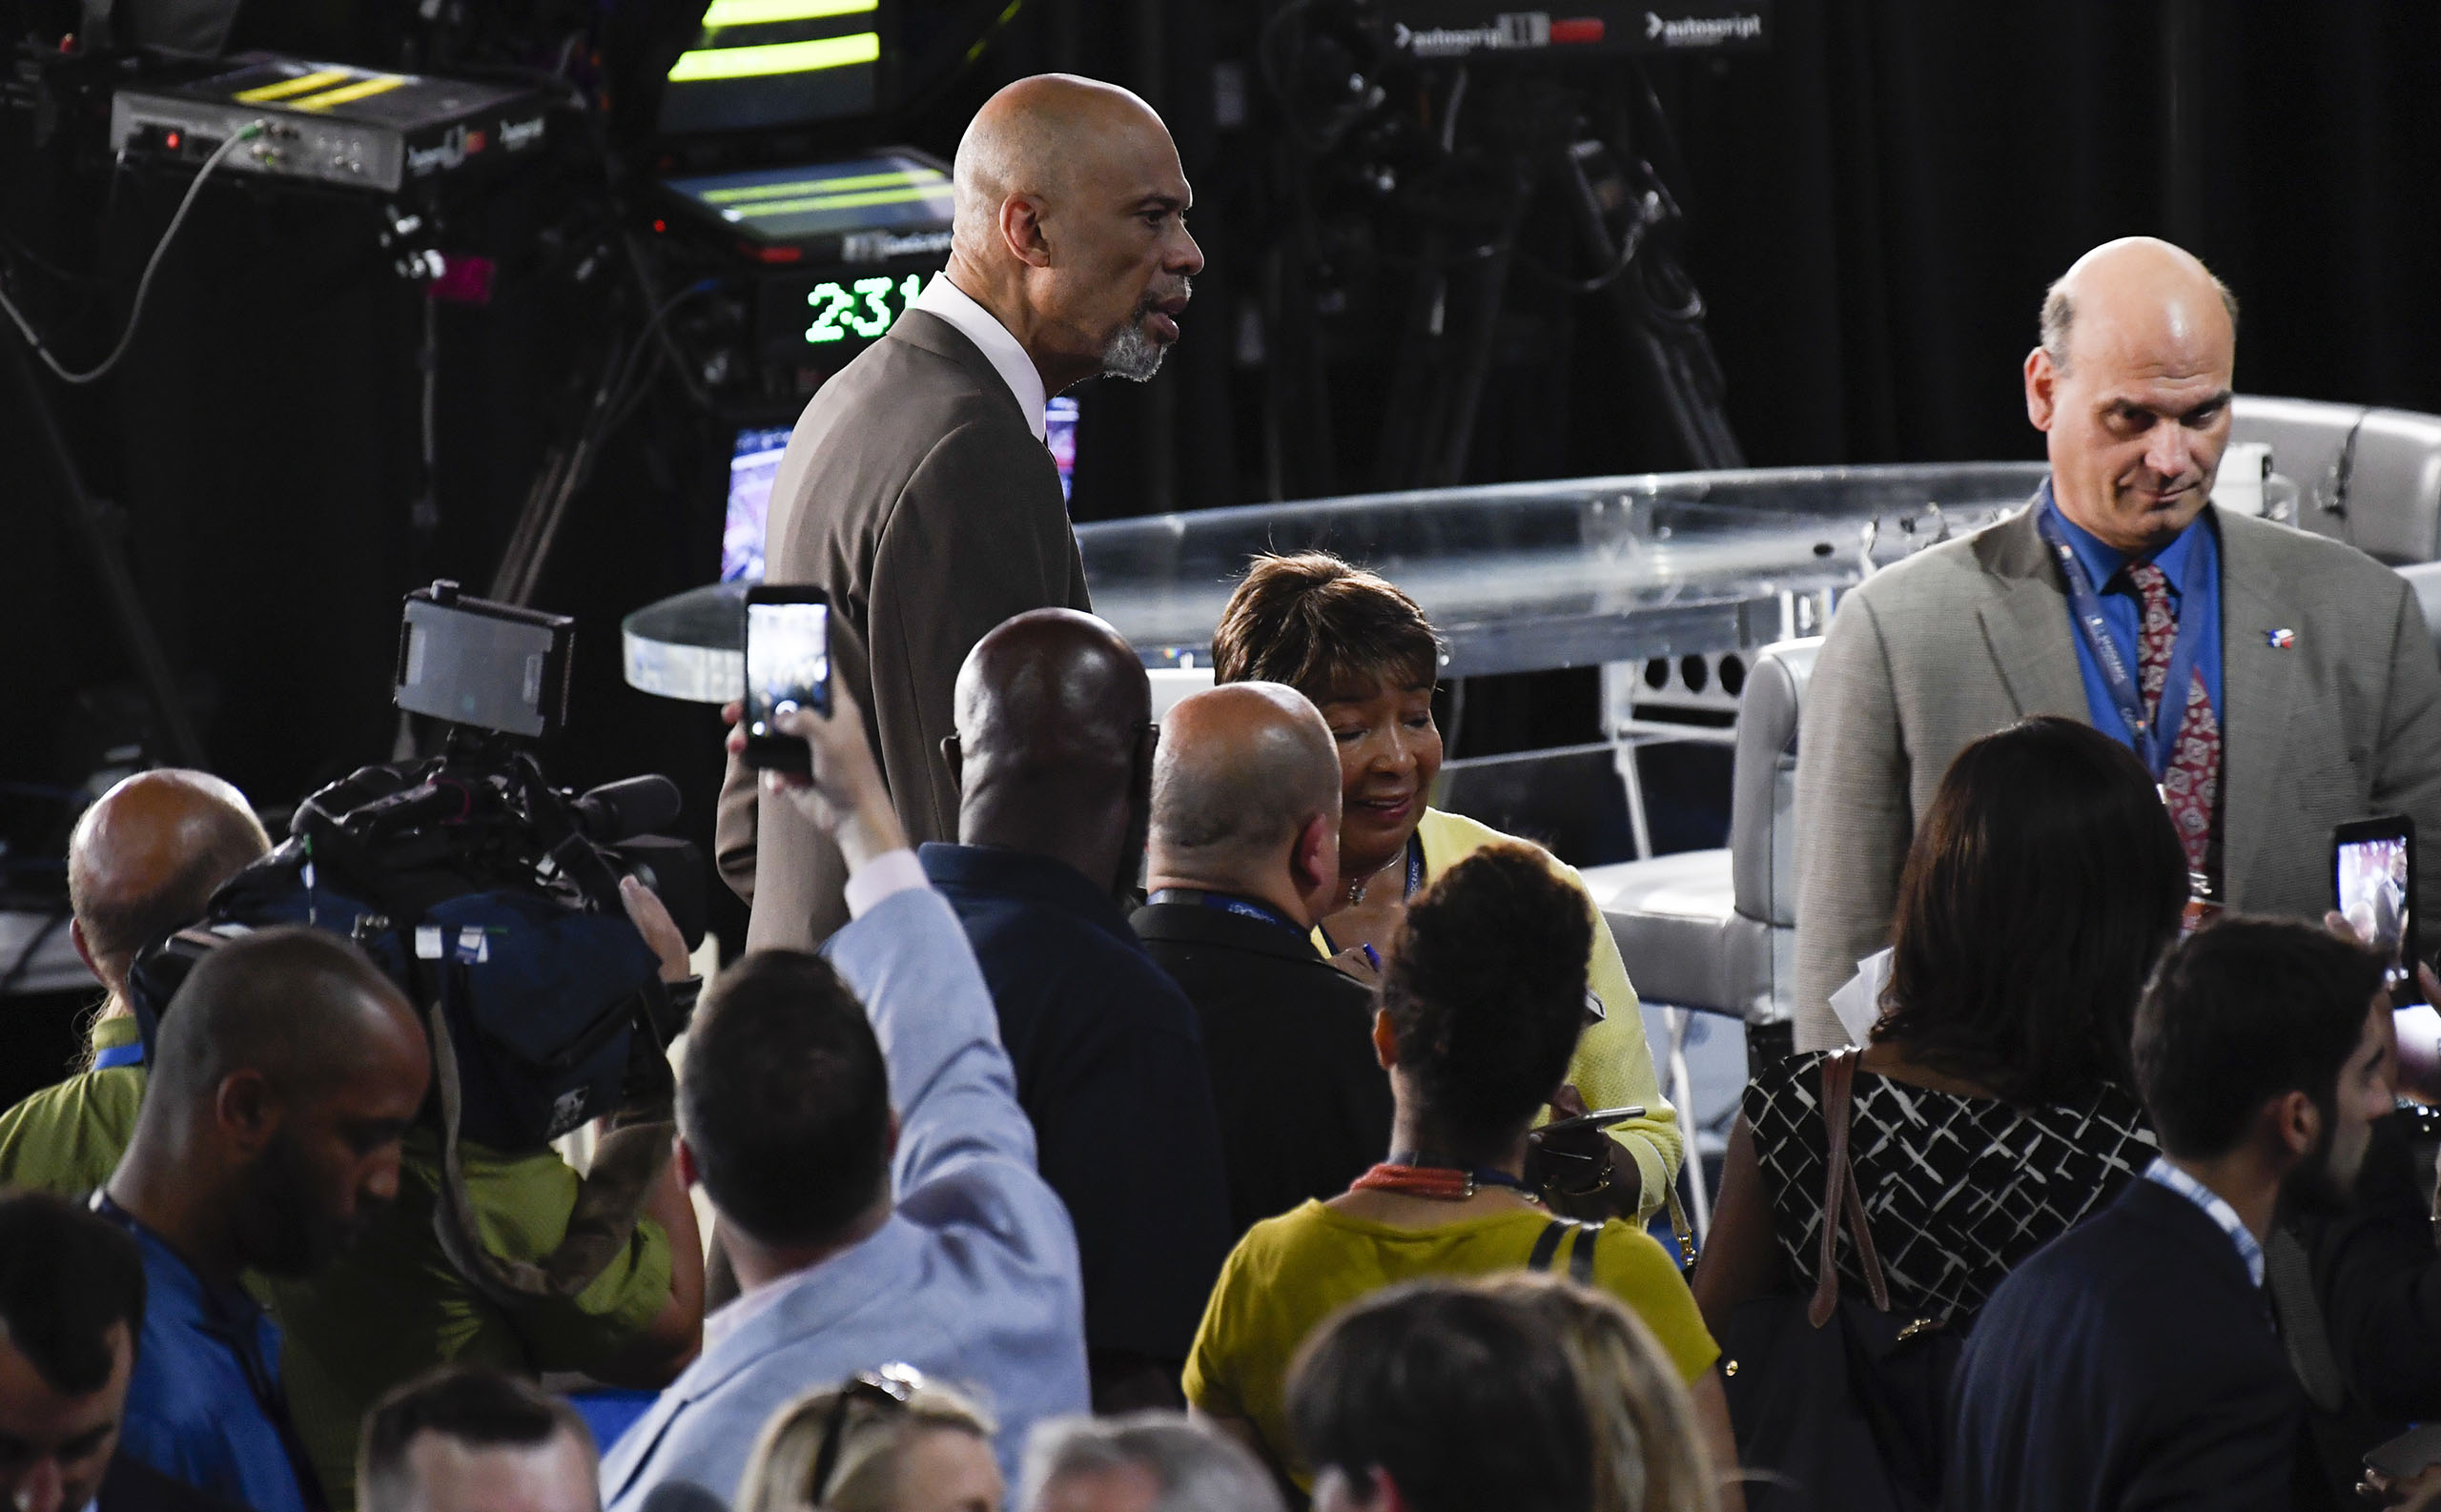 Former NBA star Kareem Abdul-Jabbar towers above the crowd as he poses for photos on the floor before the start of day two of the Democratic National Convention in Philadelphia, Pennsylvania, on July 26, 2016.